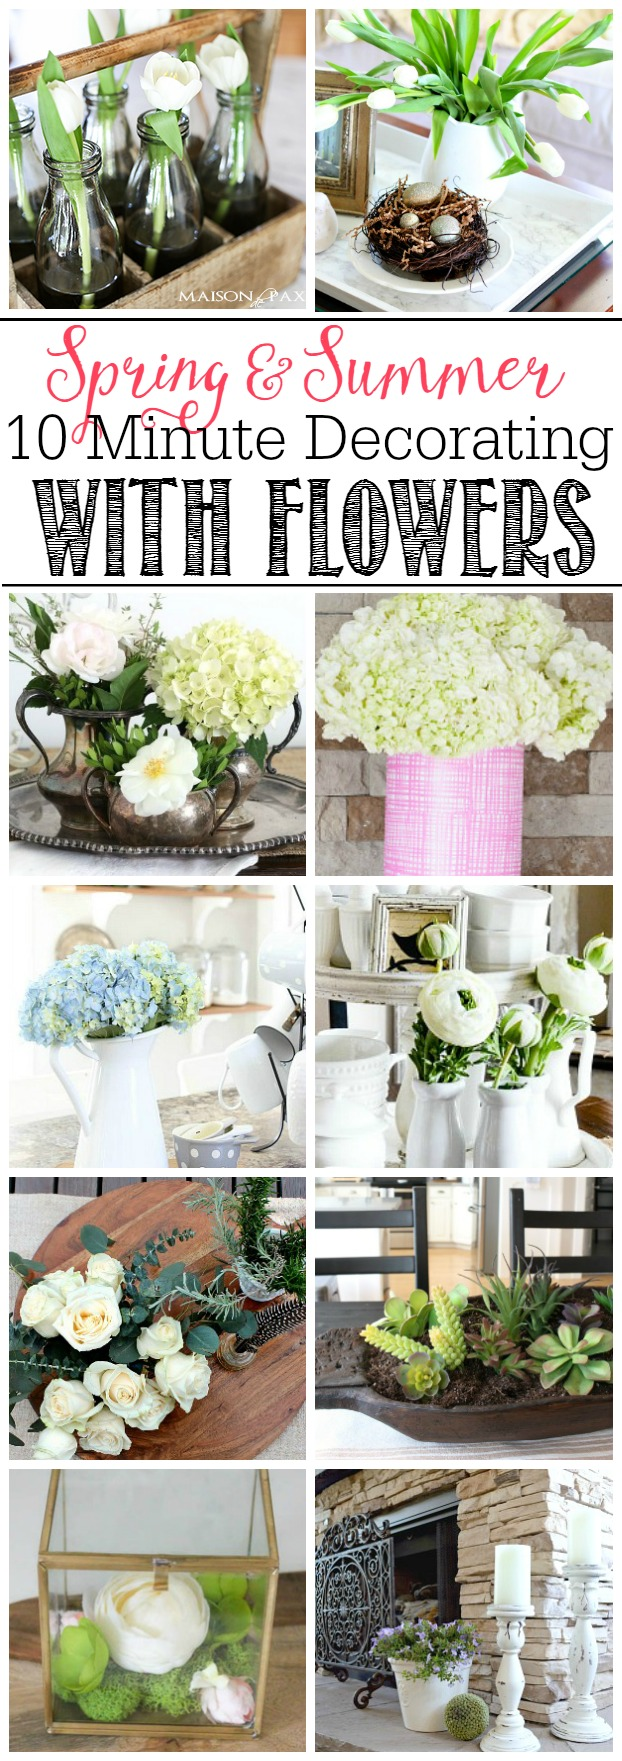 Quick-and-easy-10-minute-decorating-ideas-with-flowers.-